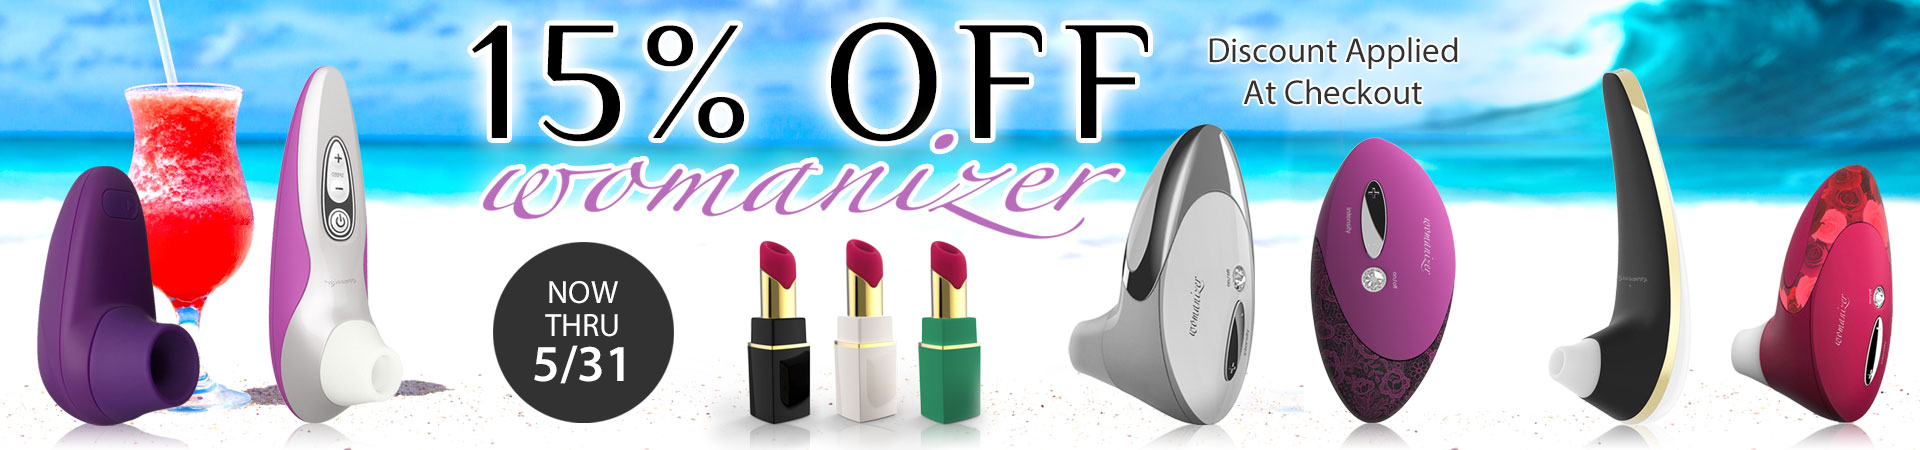 ORGASMIC SAVINGS At SheVibe With 15% OFF Womanizer! Sale Ends 5/31!